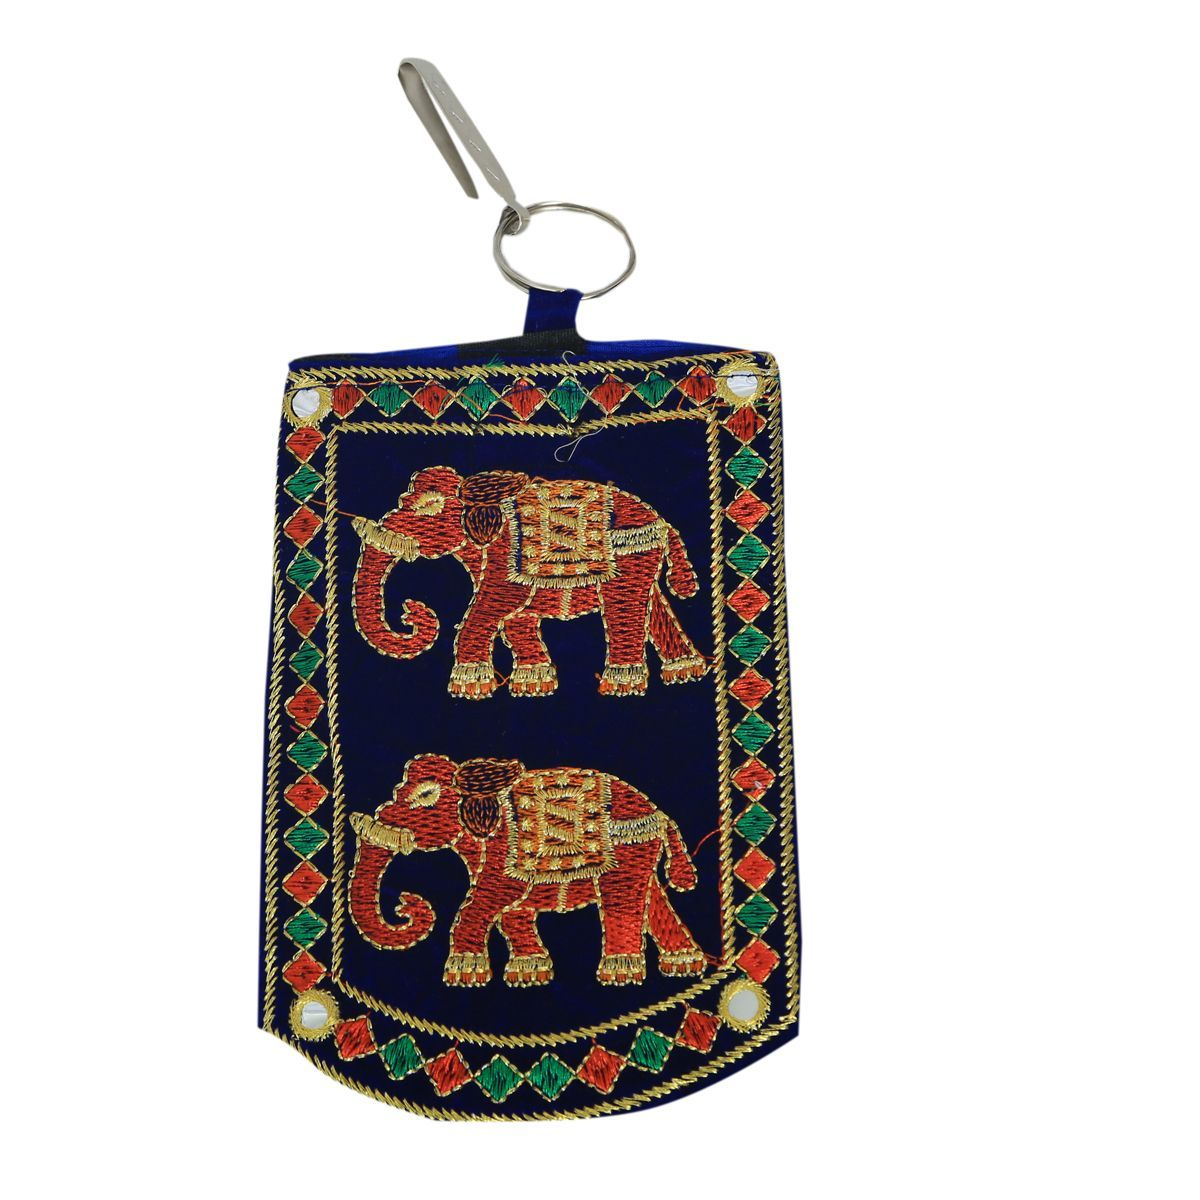 Kuber Industries™ Designer Embroided Mobile-Phone Pouch Cover With Purse Pocket And Sari Hook For Women (Blue) - BG77